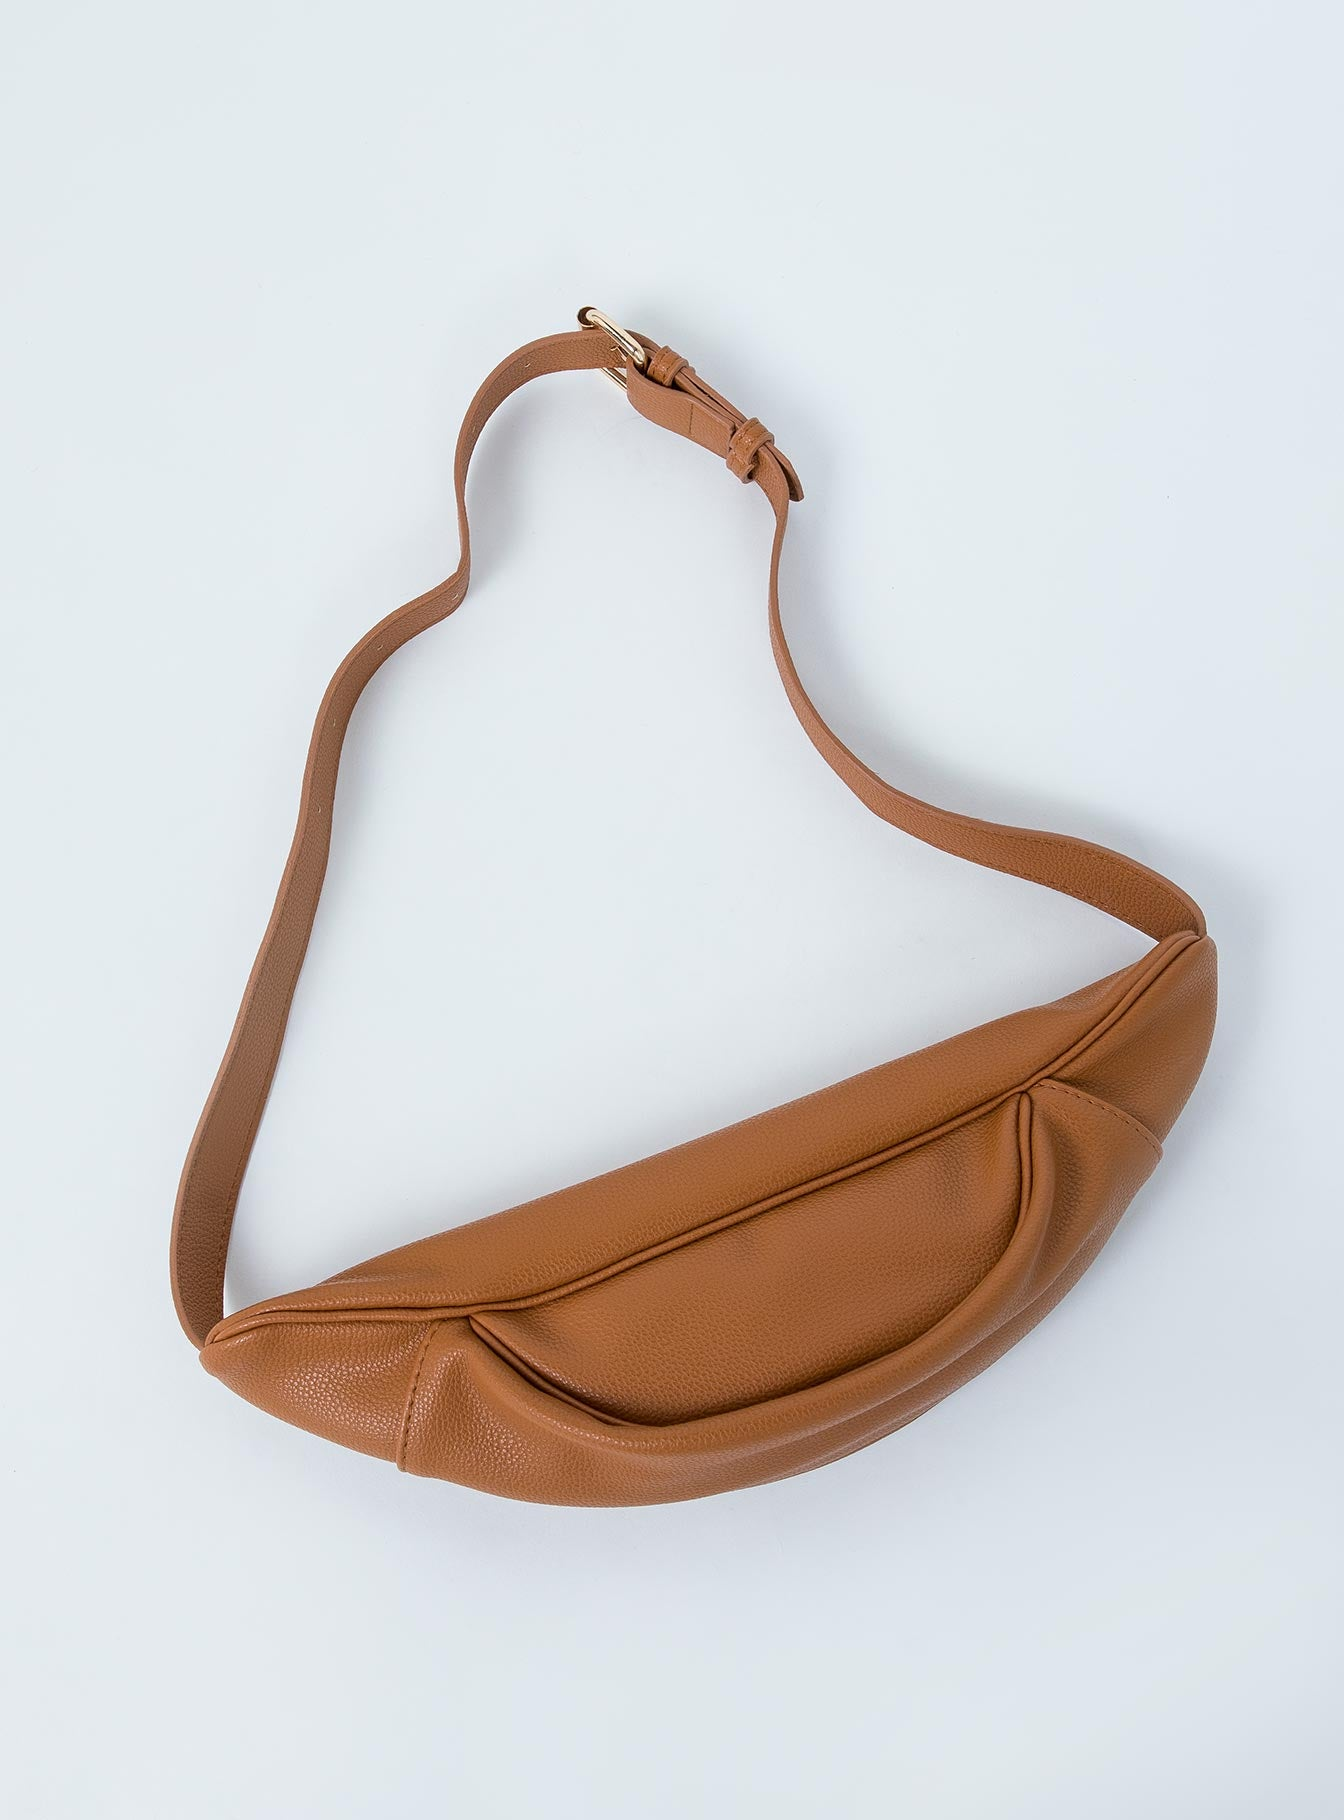 Natty Waist Bag Tan